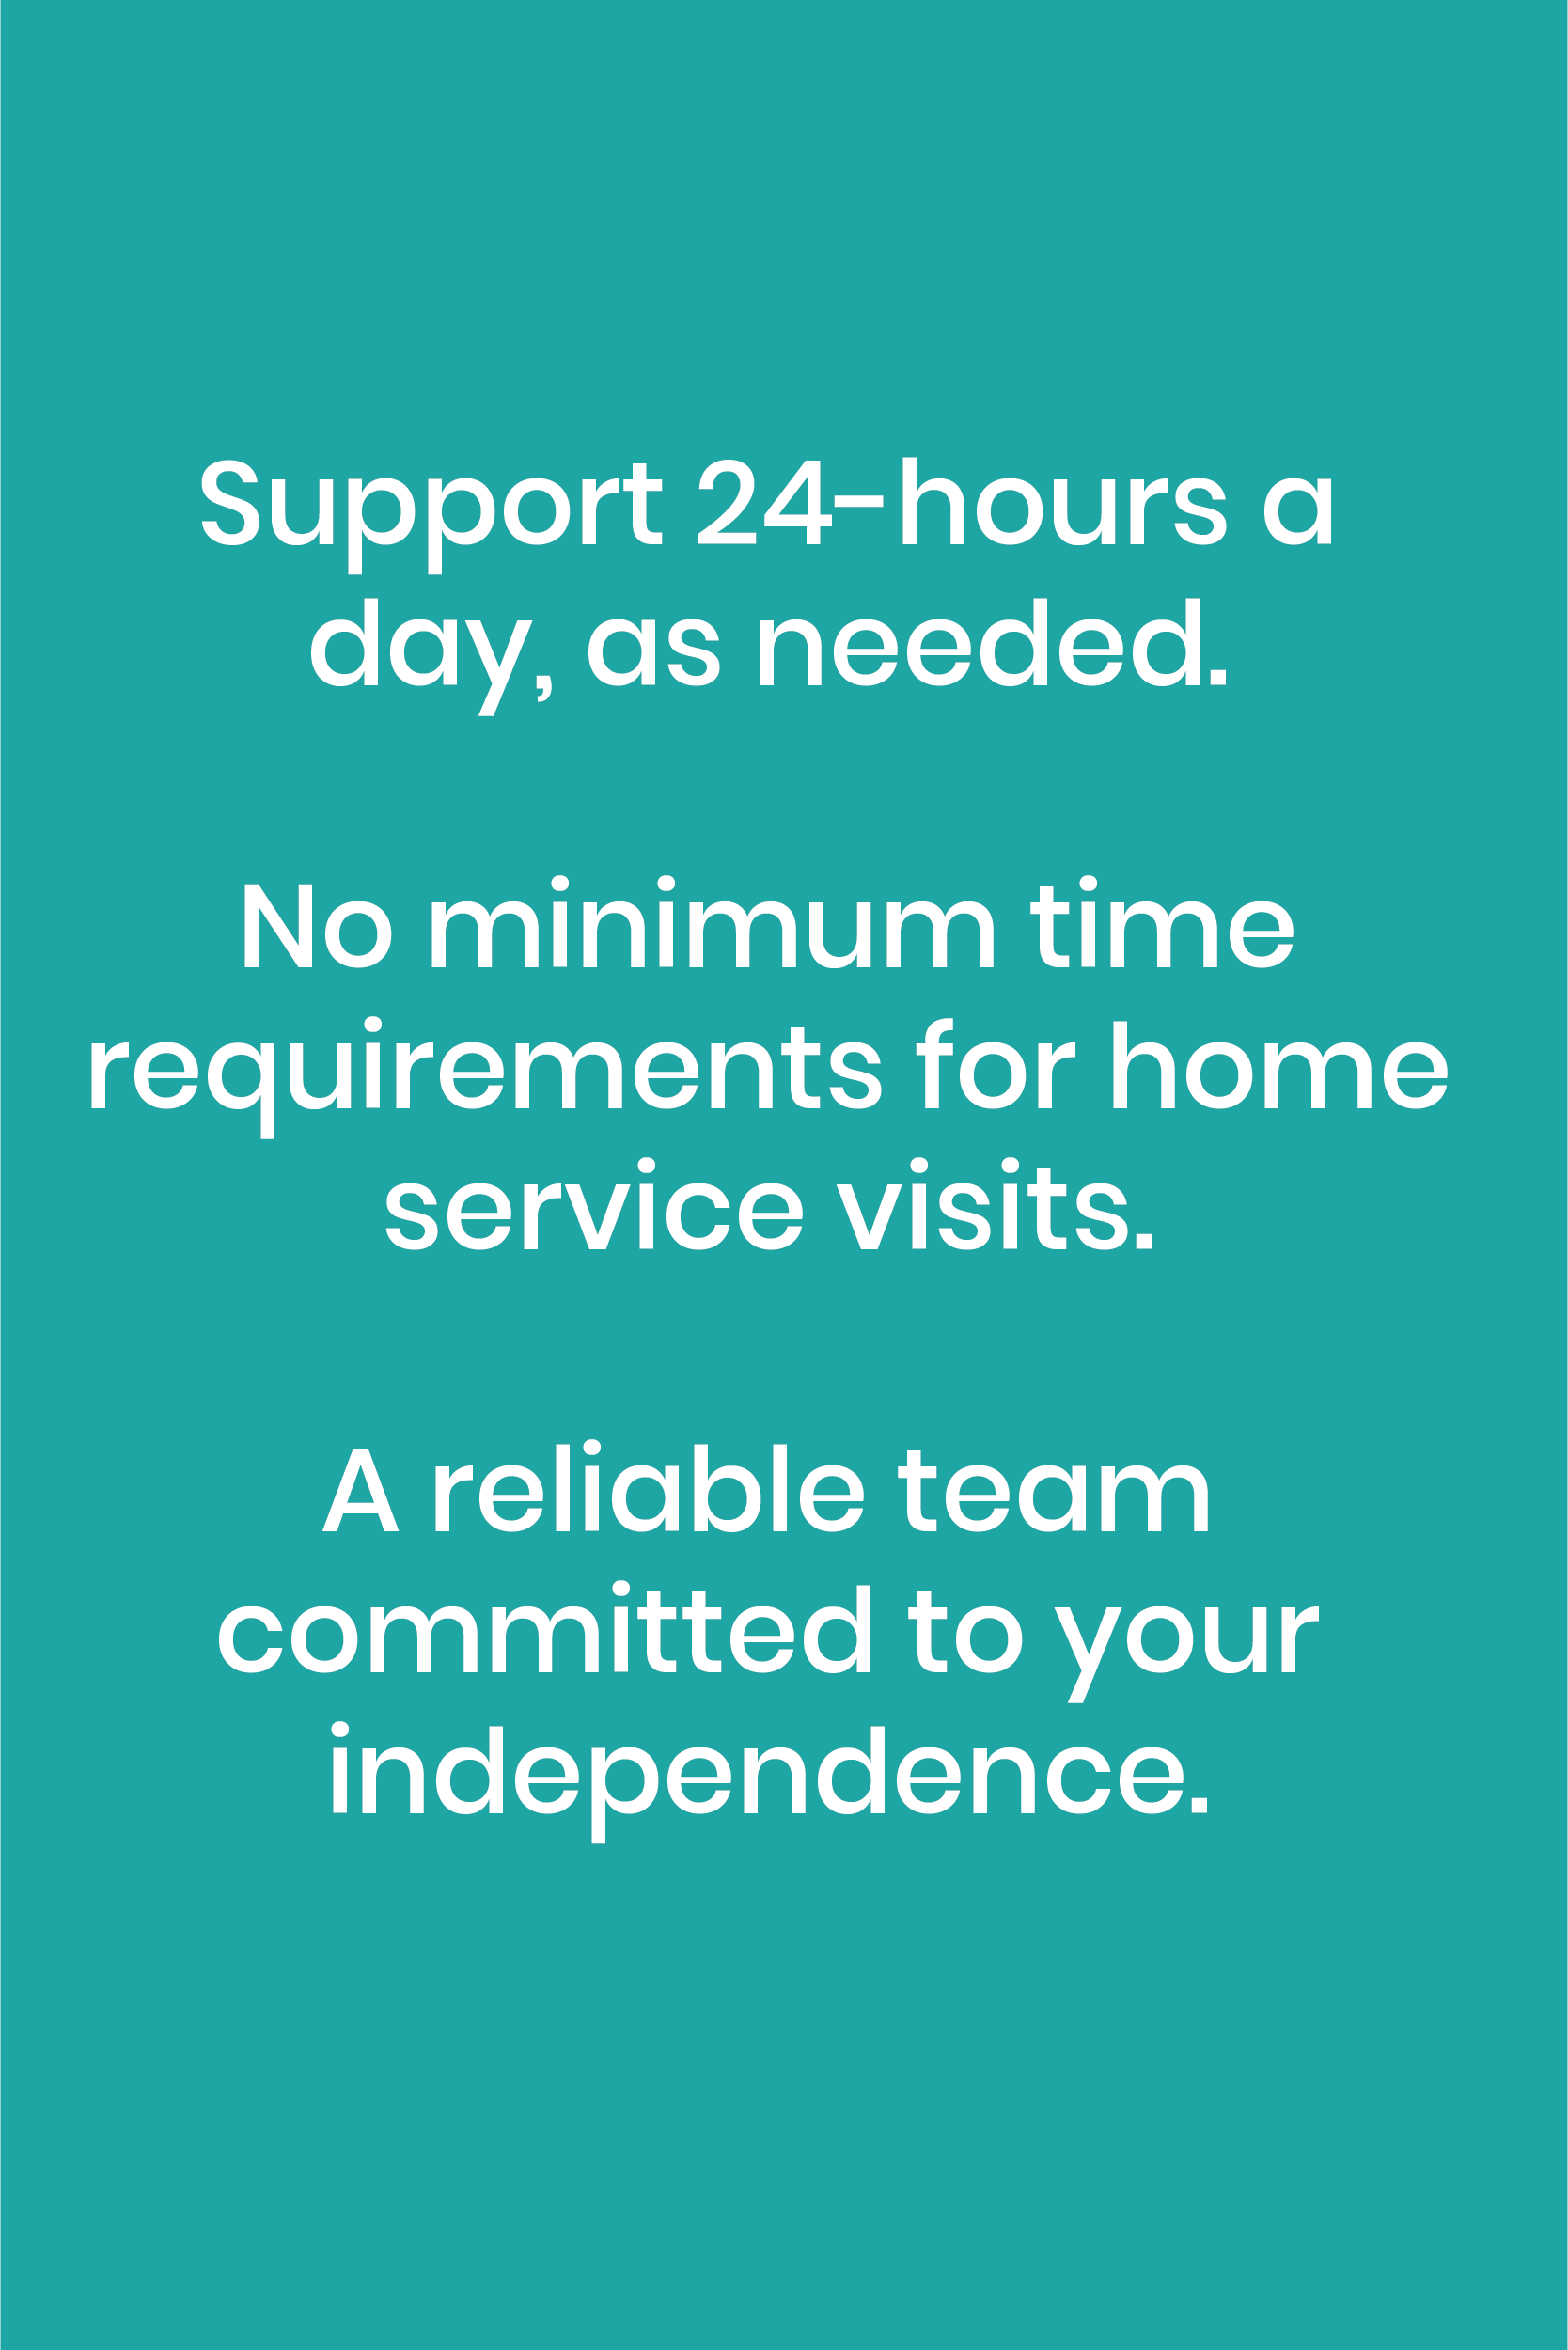 Support 24 hours a day, as needed. No minimum time requirements for home service visits. A reliable team committed to your independence.